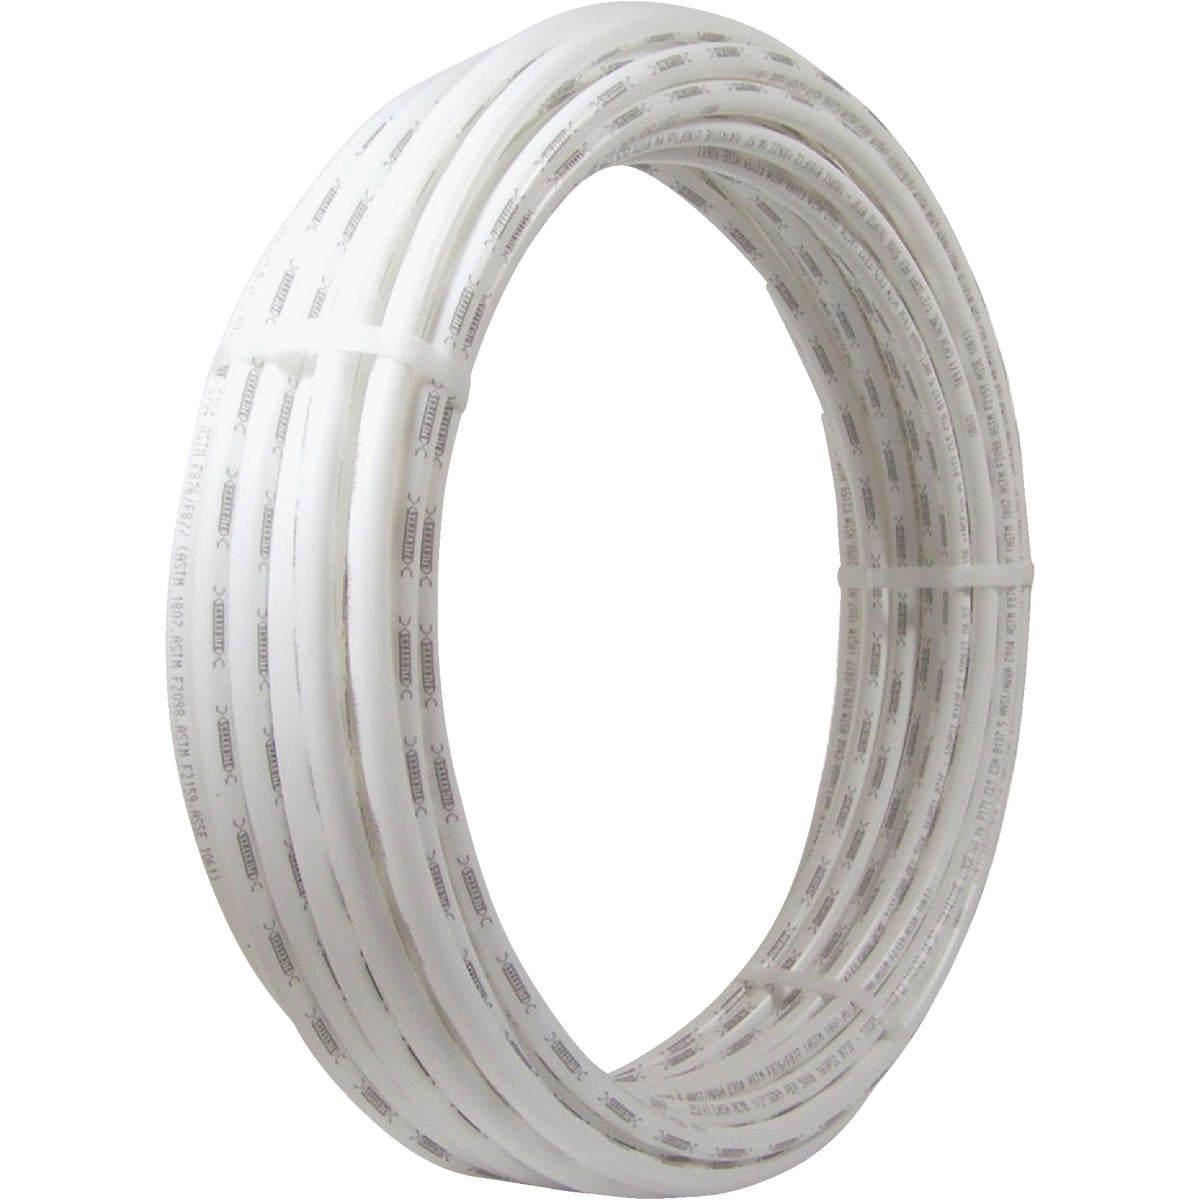 "3/4""X100' WHT PEX TUBING - WPTC12-100W by Watts Regulator Co"